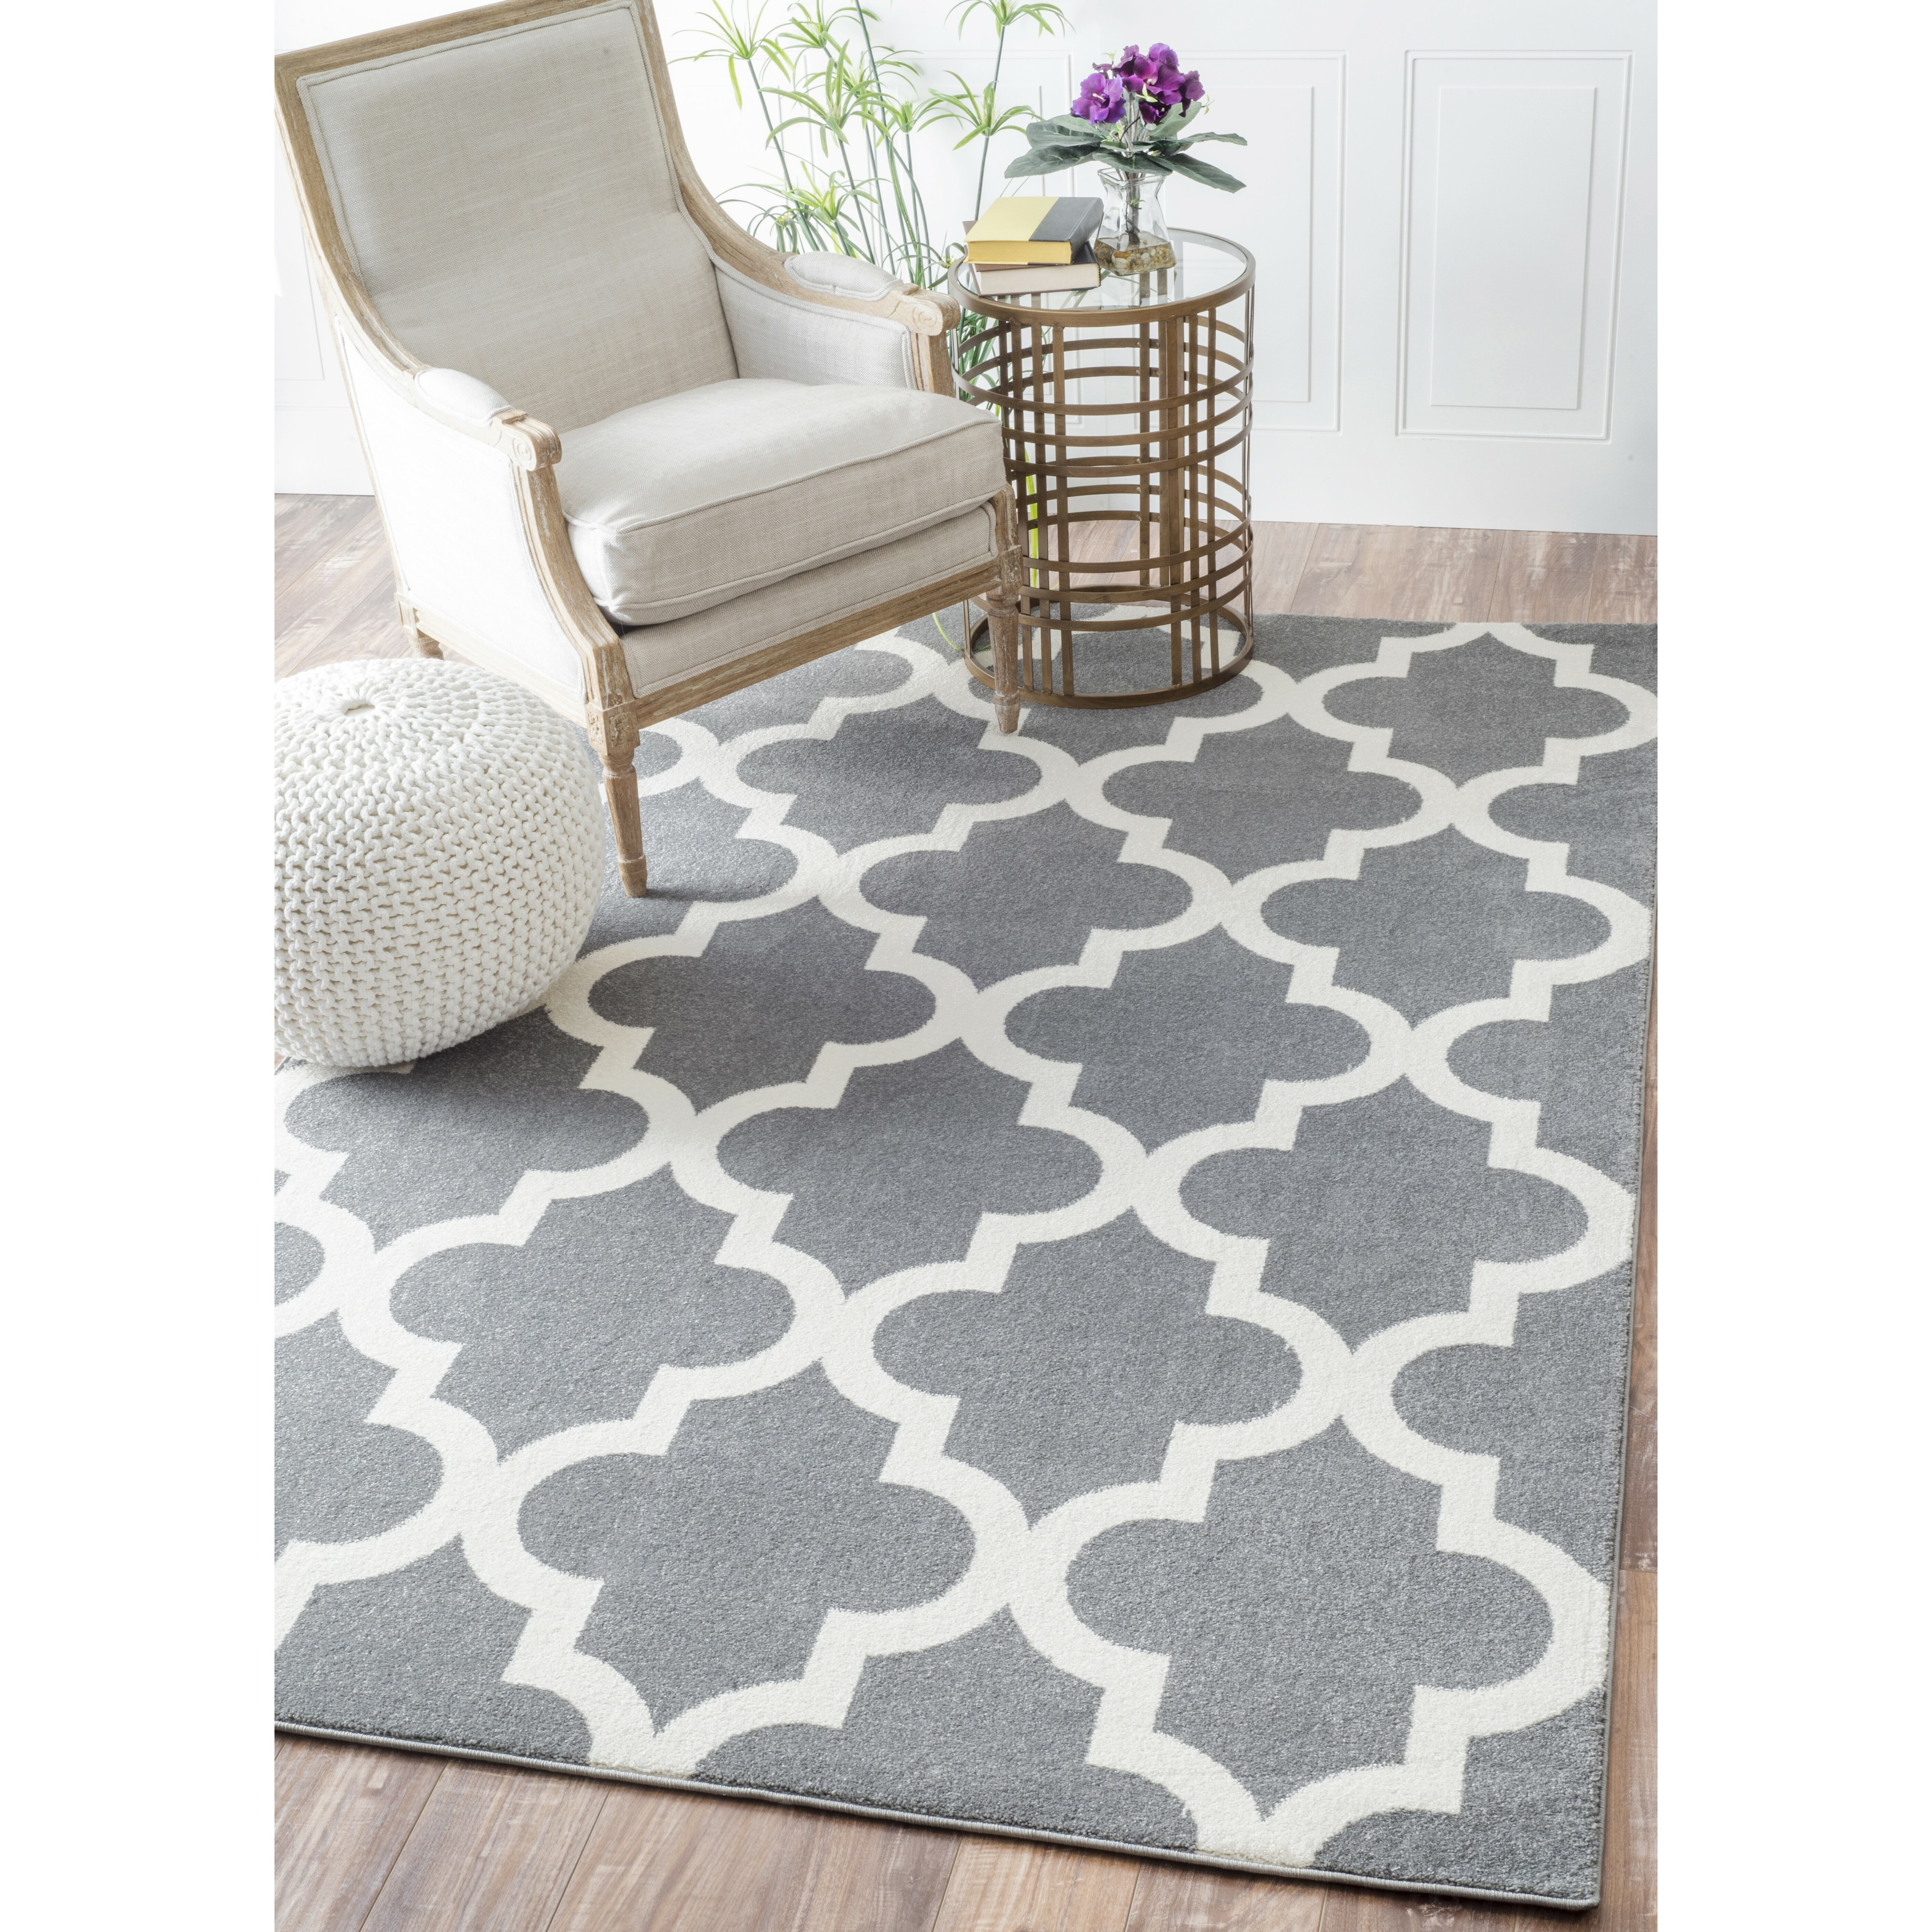 8x10 area rugs 8x10 area rugs 38